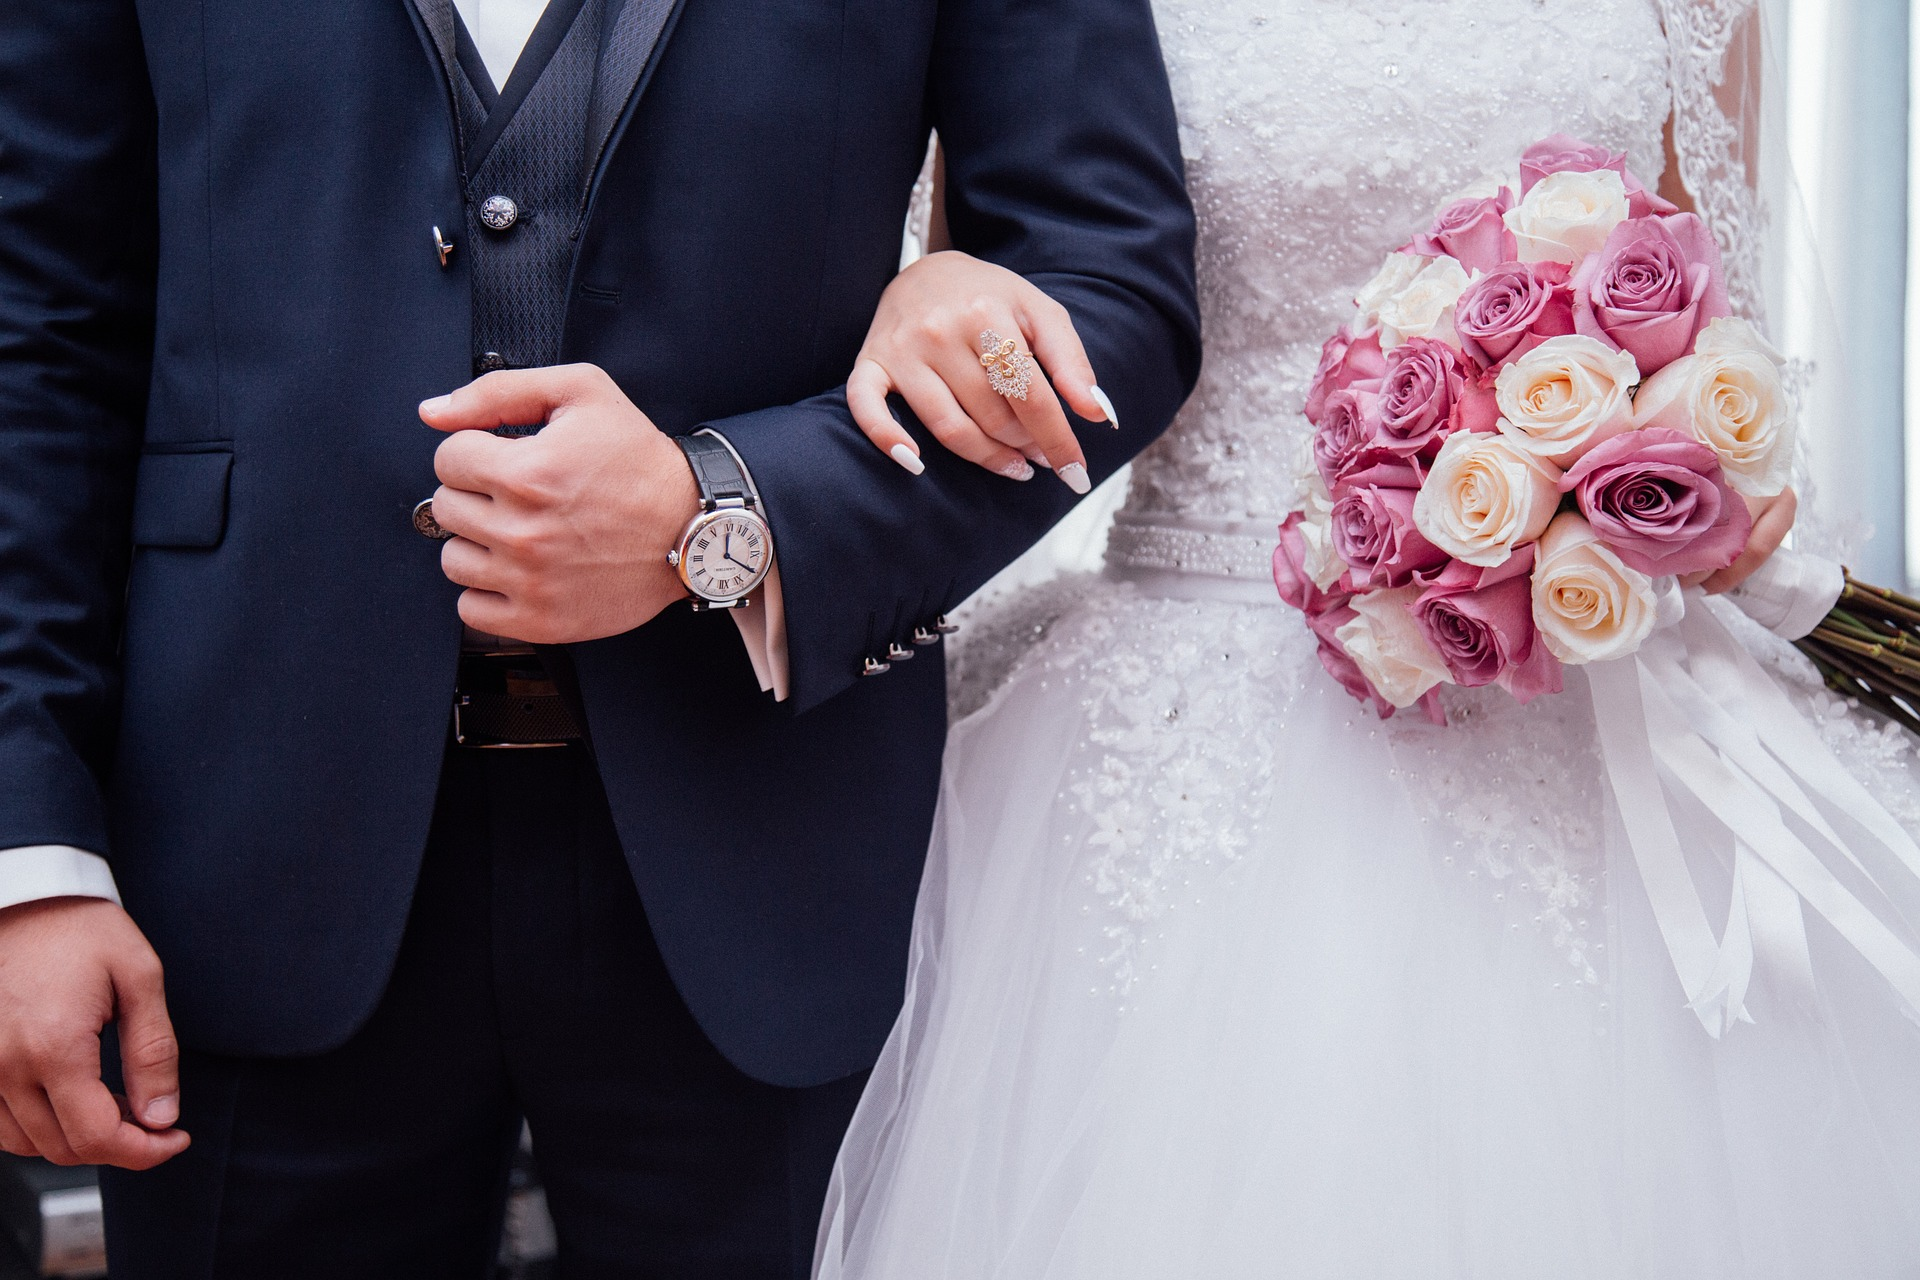 Modern Wedding Guest Etiquette Rules - Can you share photos from the wedding